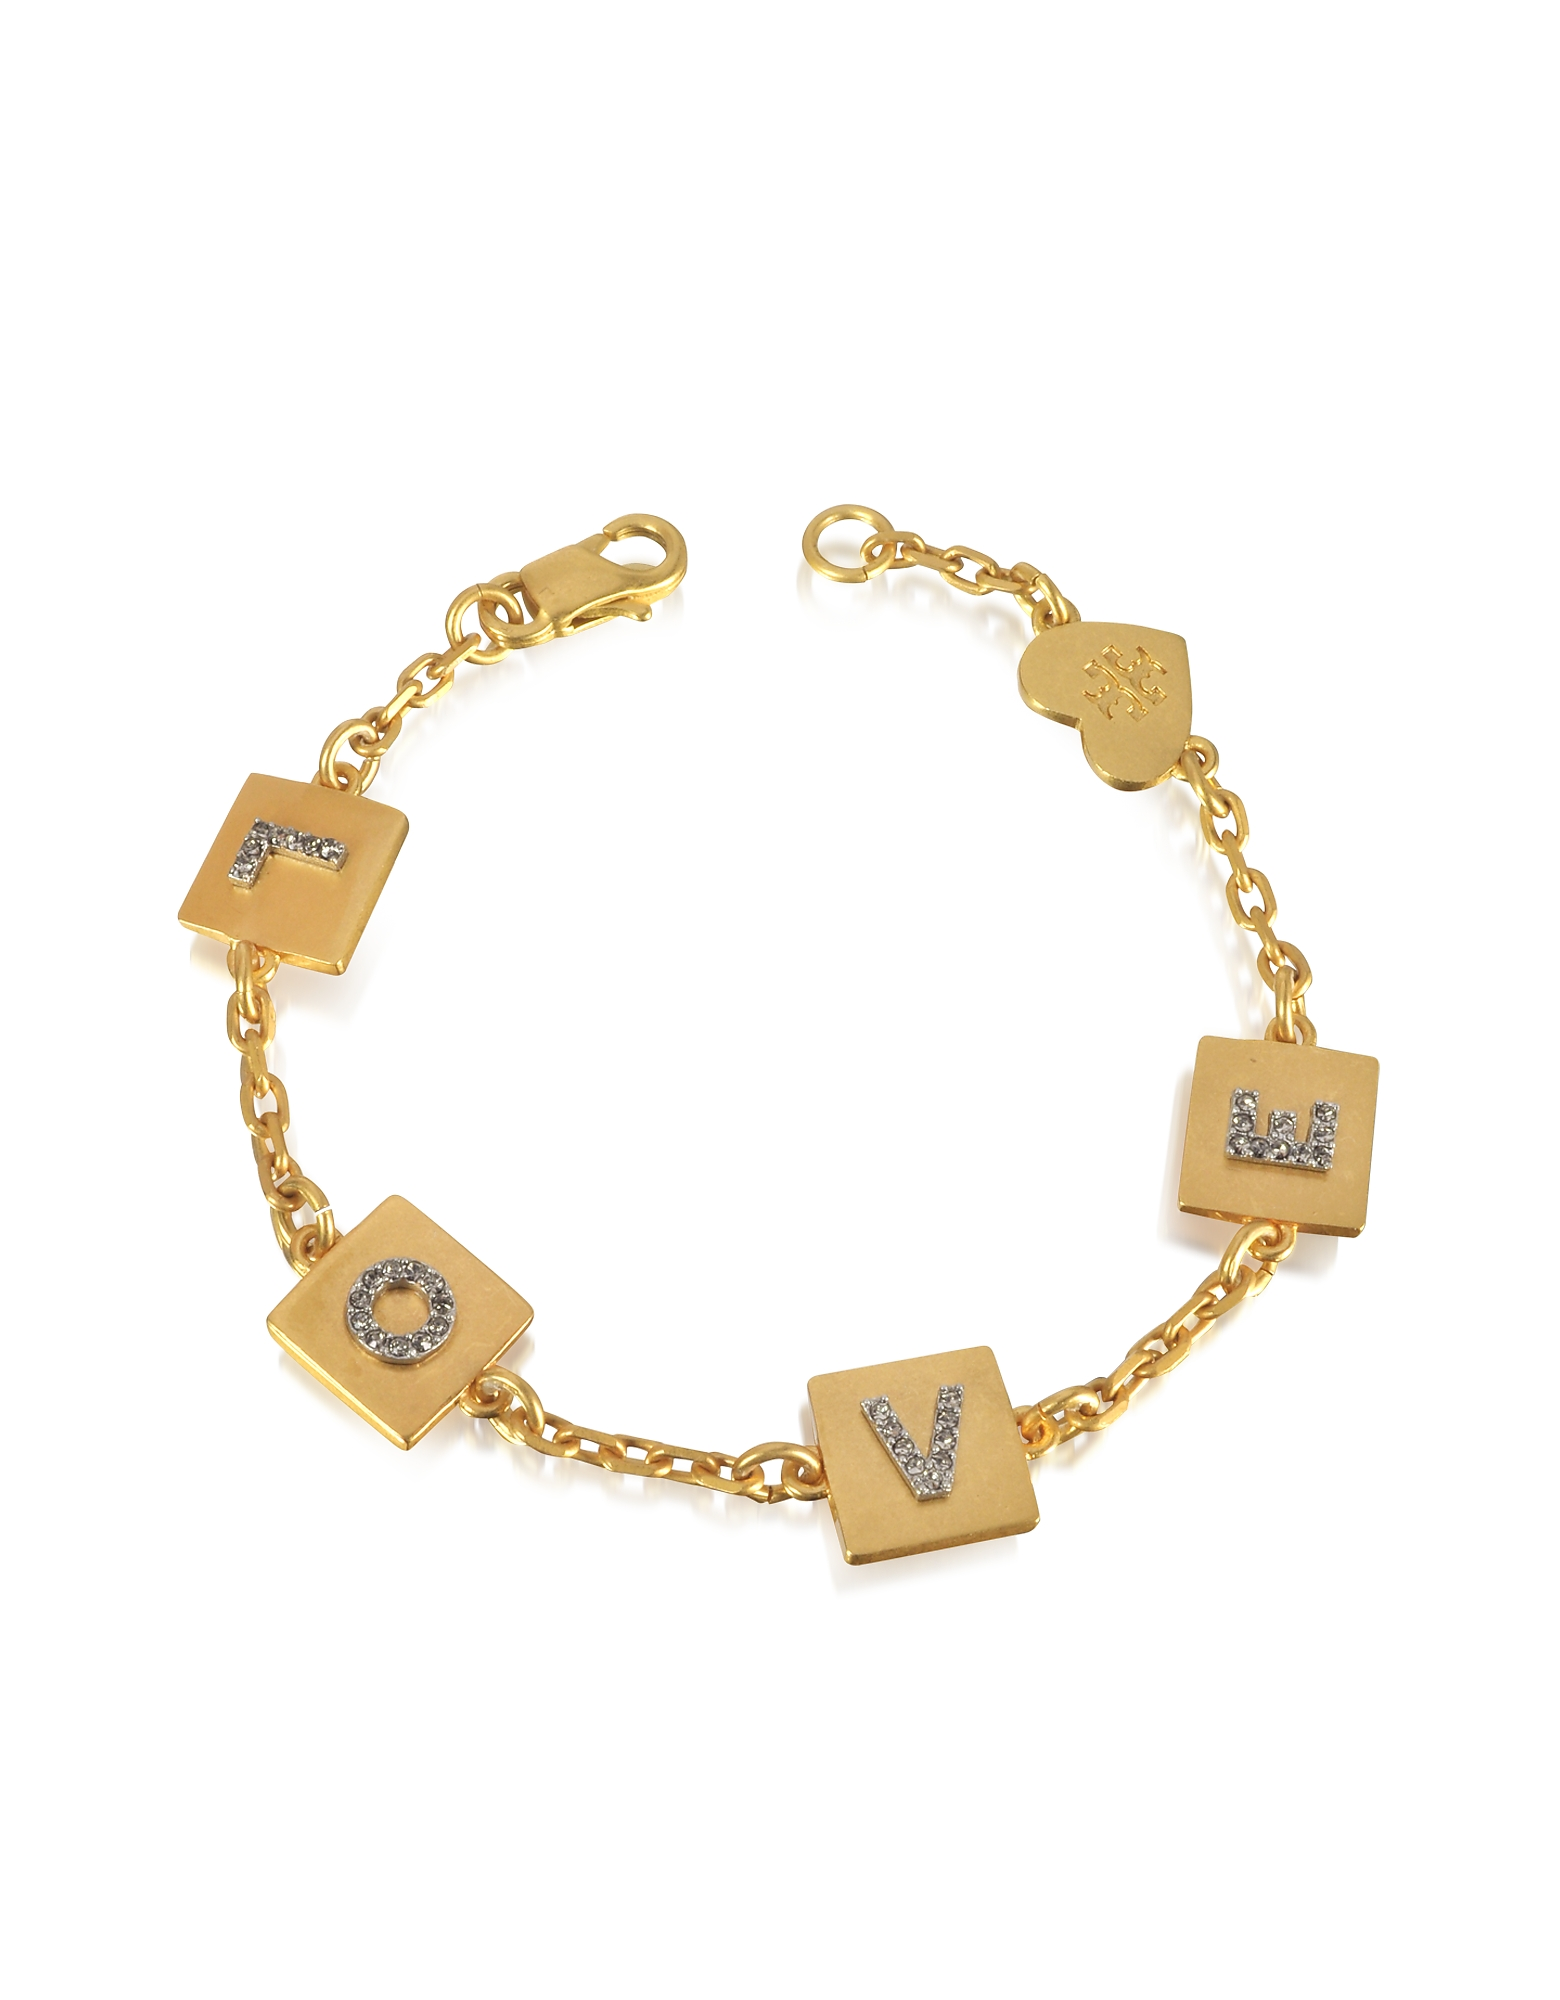 Tory Burch Bracelets, Love Message Delicate Chain Bracelet